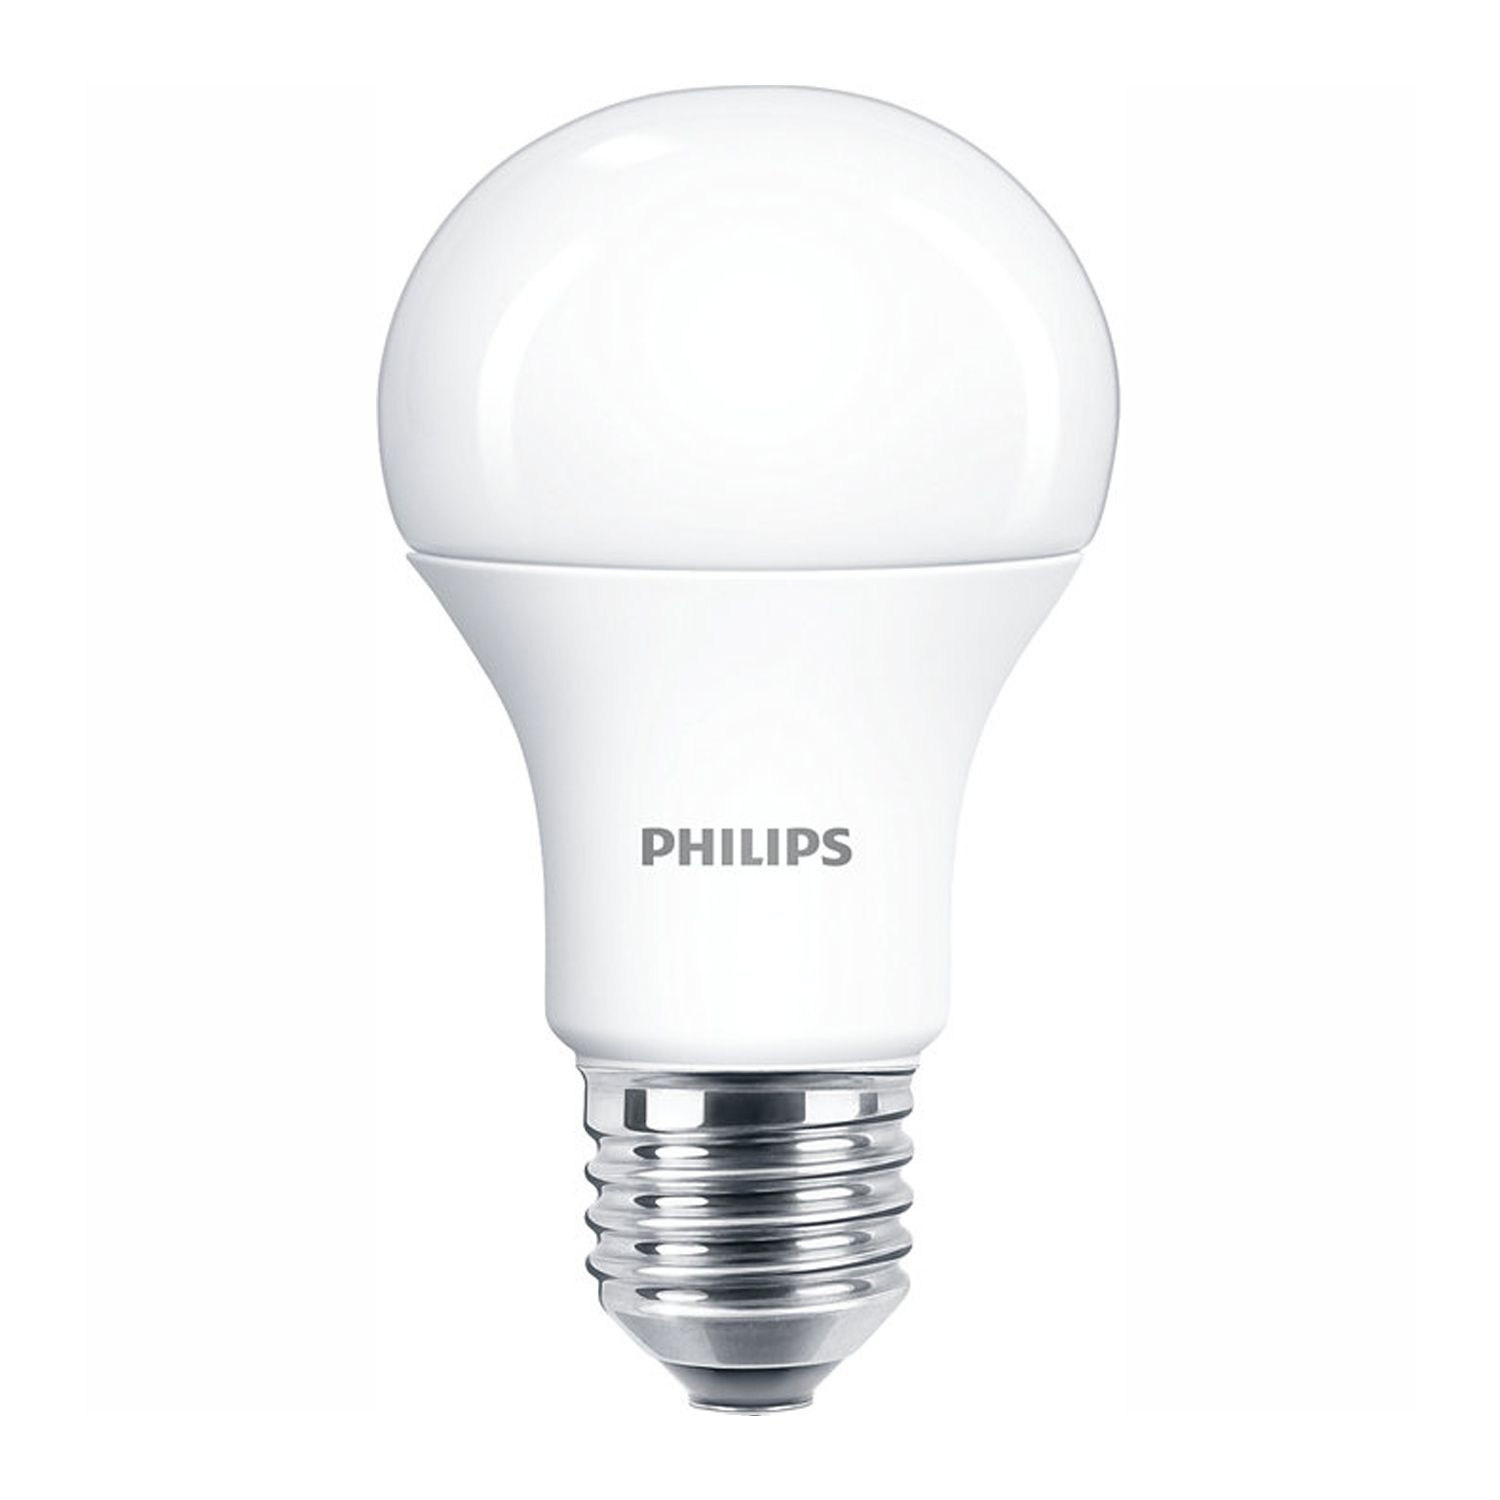 Philps CorePro LEDbulb E27 A60 10.5W 927 Matt | Replacer for 75W